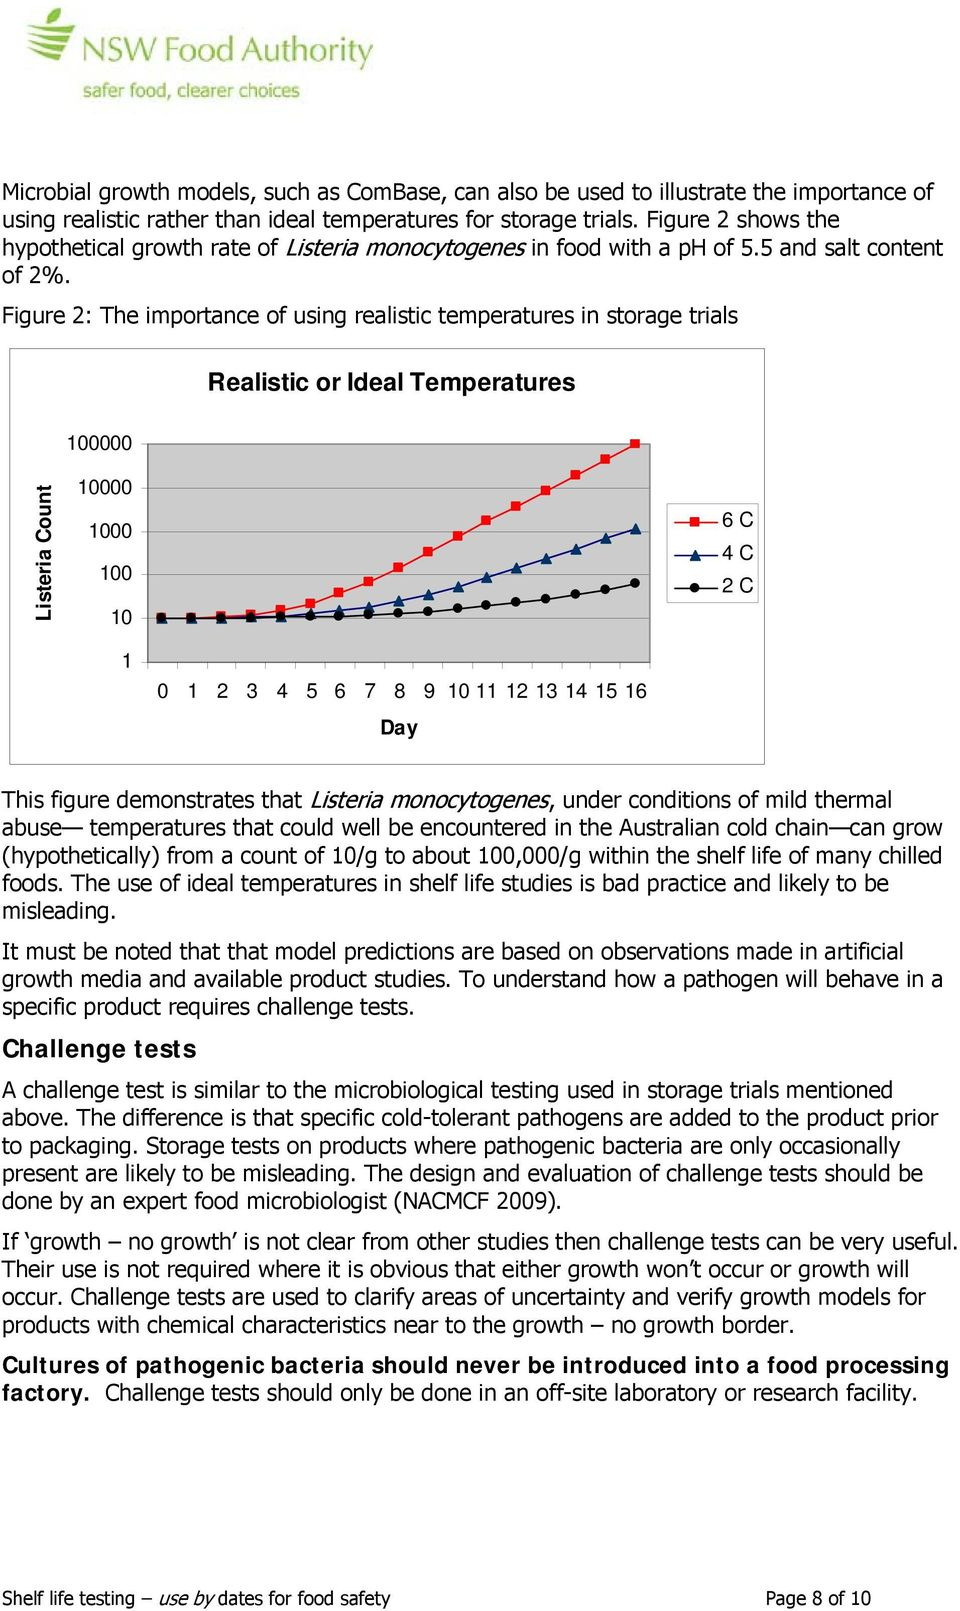 Figure 2: The importance of using realistic temperatures in storage trials Realistic or Ideal Temperatures 100000 Listeria Count 10000 1000 100 10 6 C 4 C 2 C 1 0 1 2 3 4 5 6 7 8 9 10 11 12 13 14 15